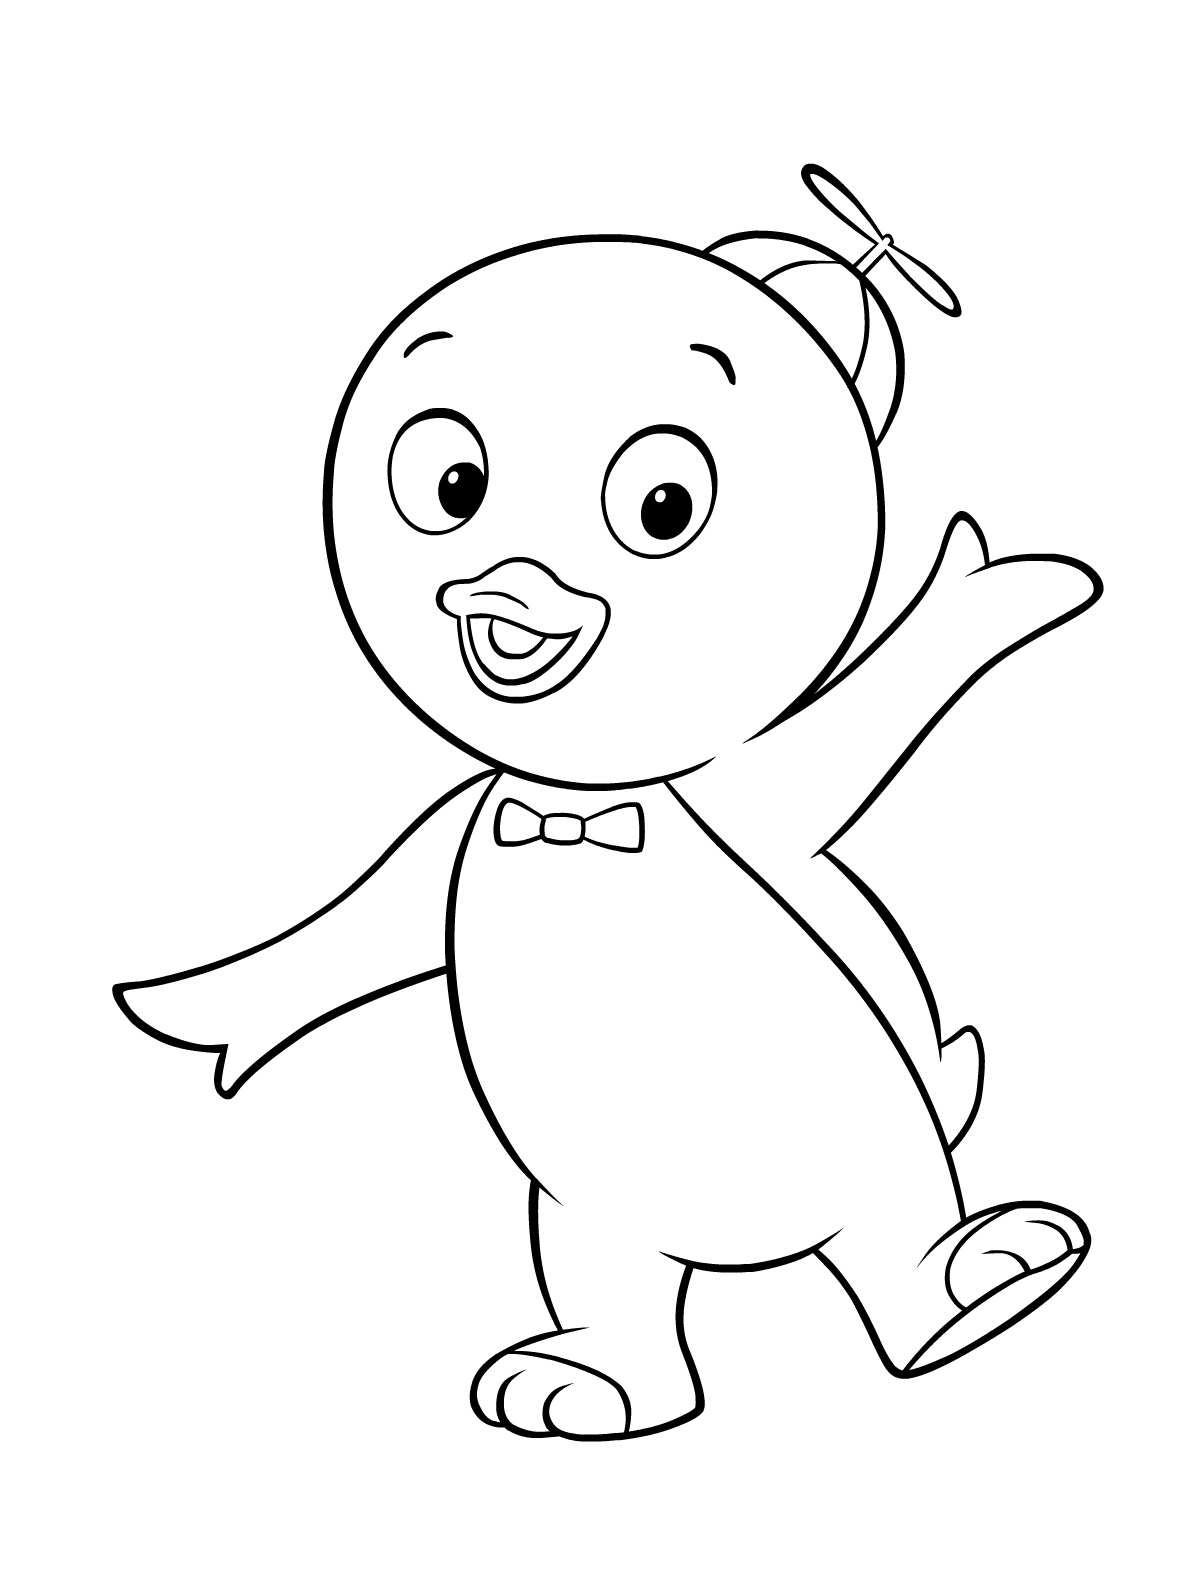 Free Printable Backyardigans Coloring Pages For Kids Coloring Sheet Of A Printable